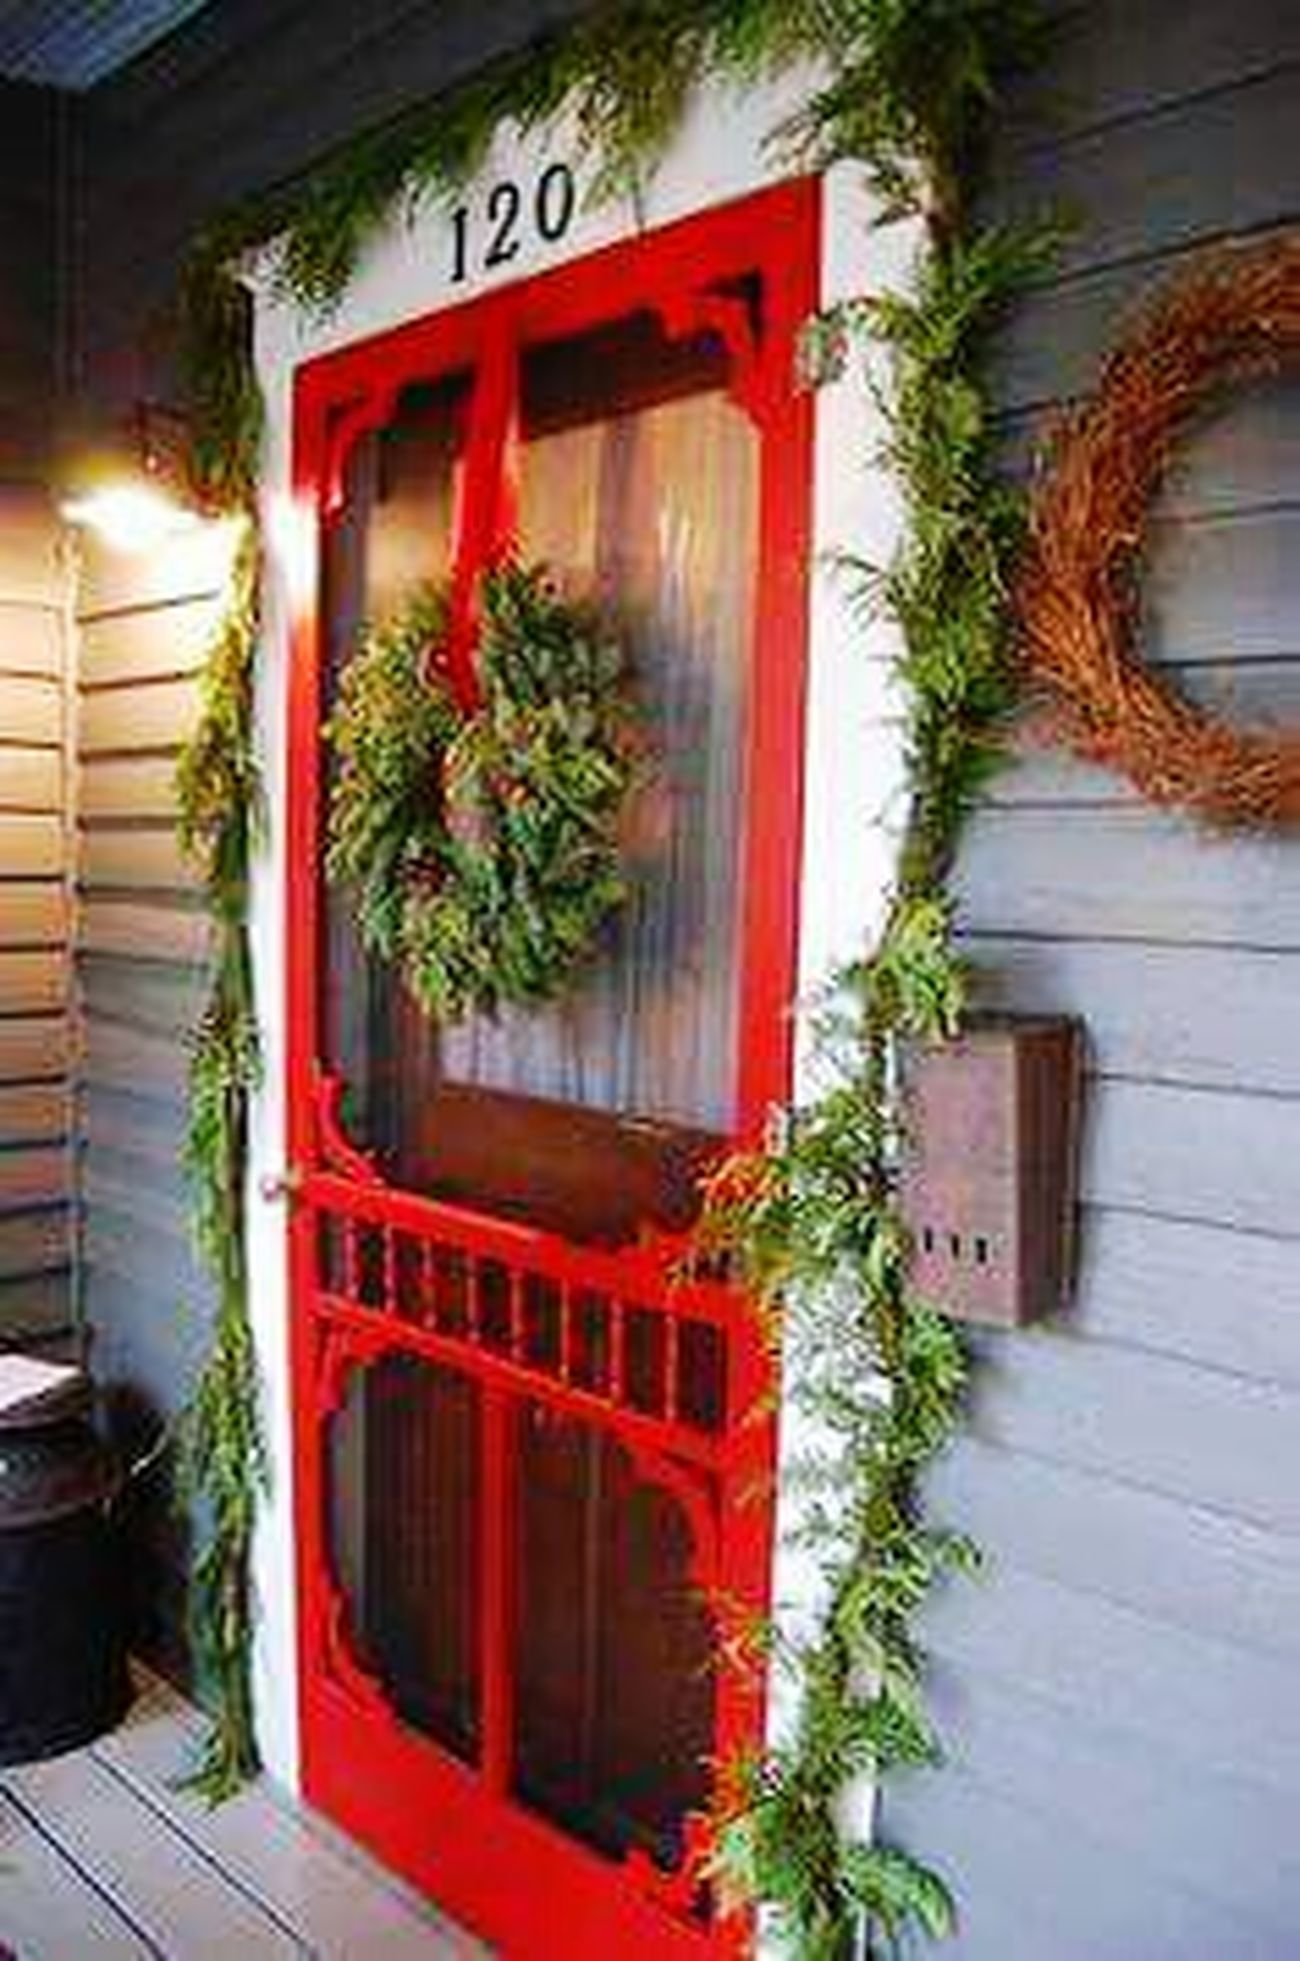 The Red Door Red Door Red Christmas Decorations Christmas Wreath Screen Door Mailbox Garland Showcase: December Its The Most Wonderful Time Of The Year  120 Country Christmas